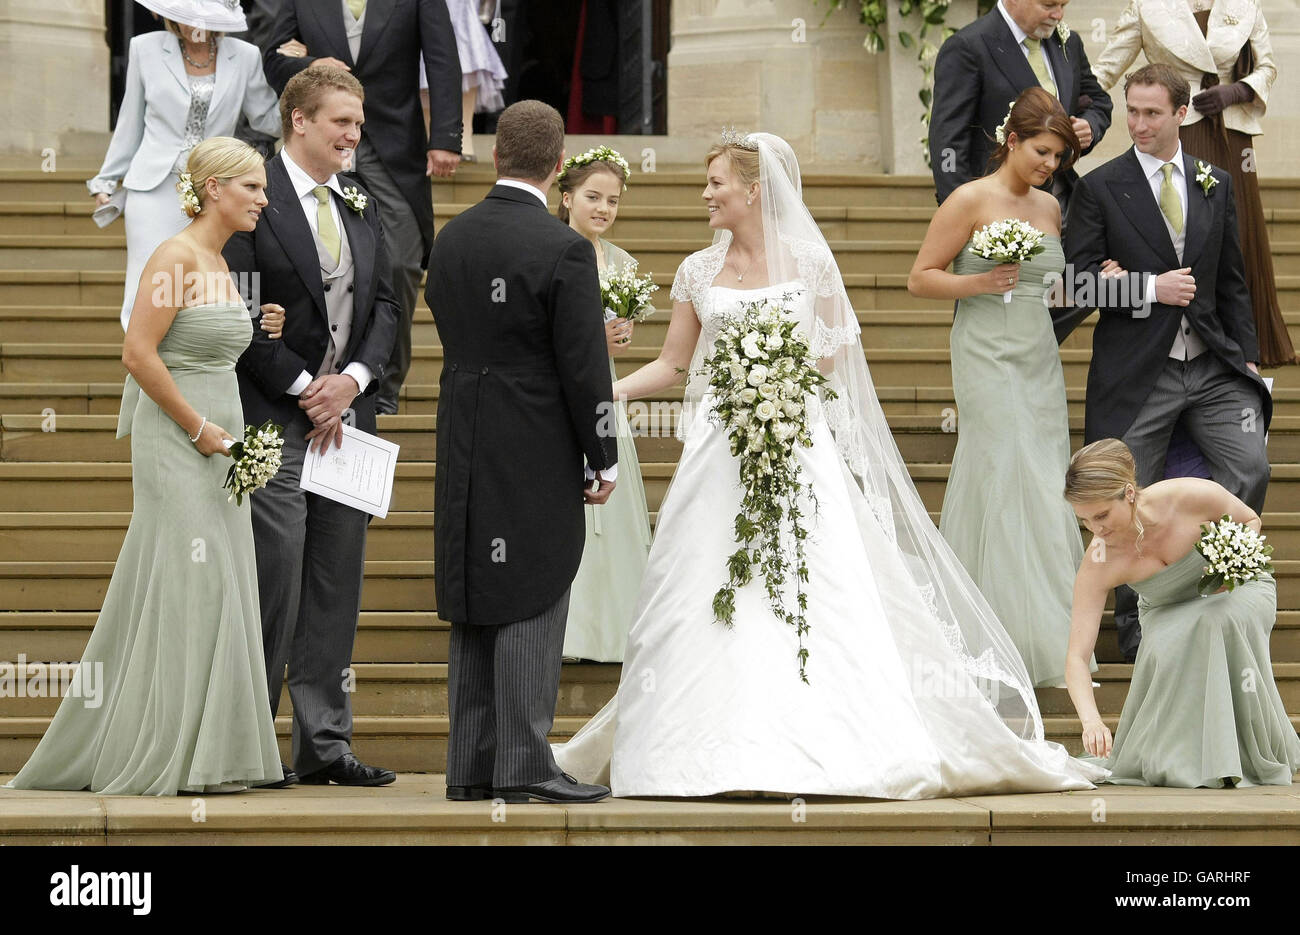 Royalty Peter Phillips And Autumn Kelly Wedding St George S Stock Photo Alamy,Formal Summer Beach Wedding Guest Dresses